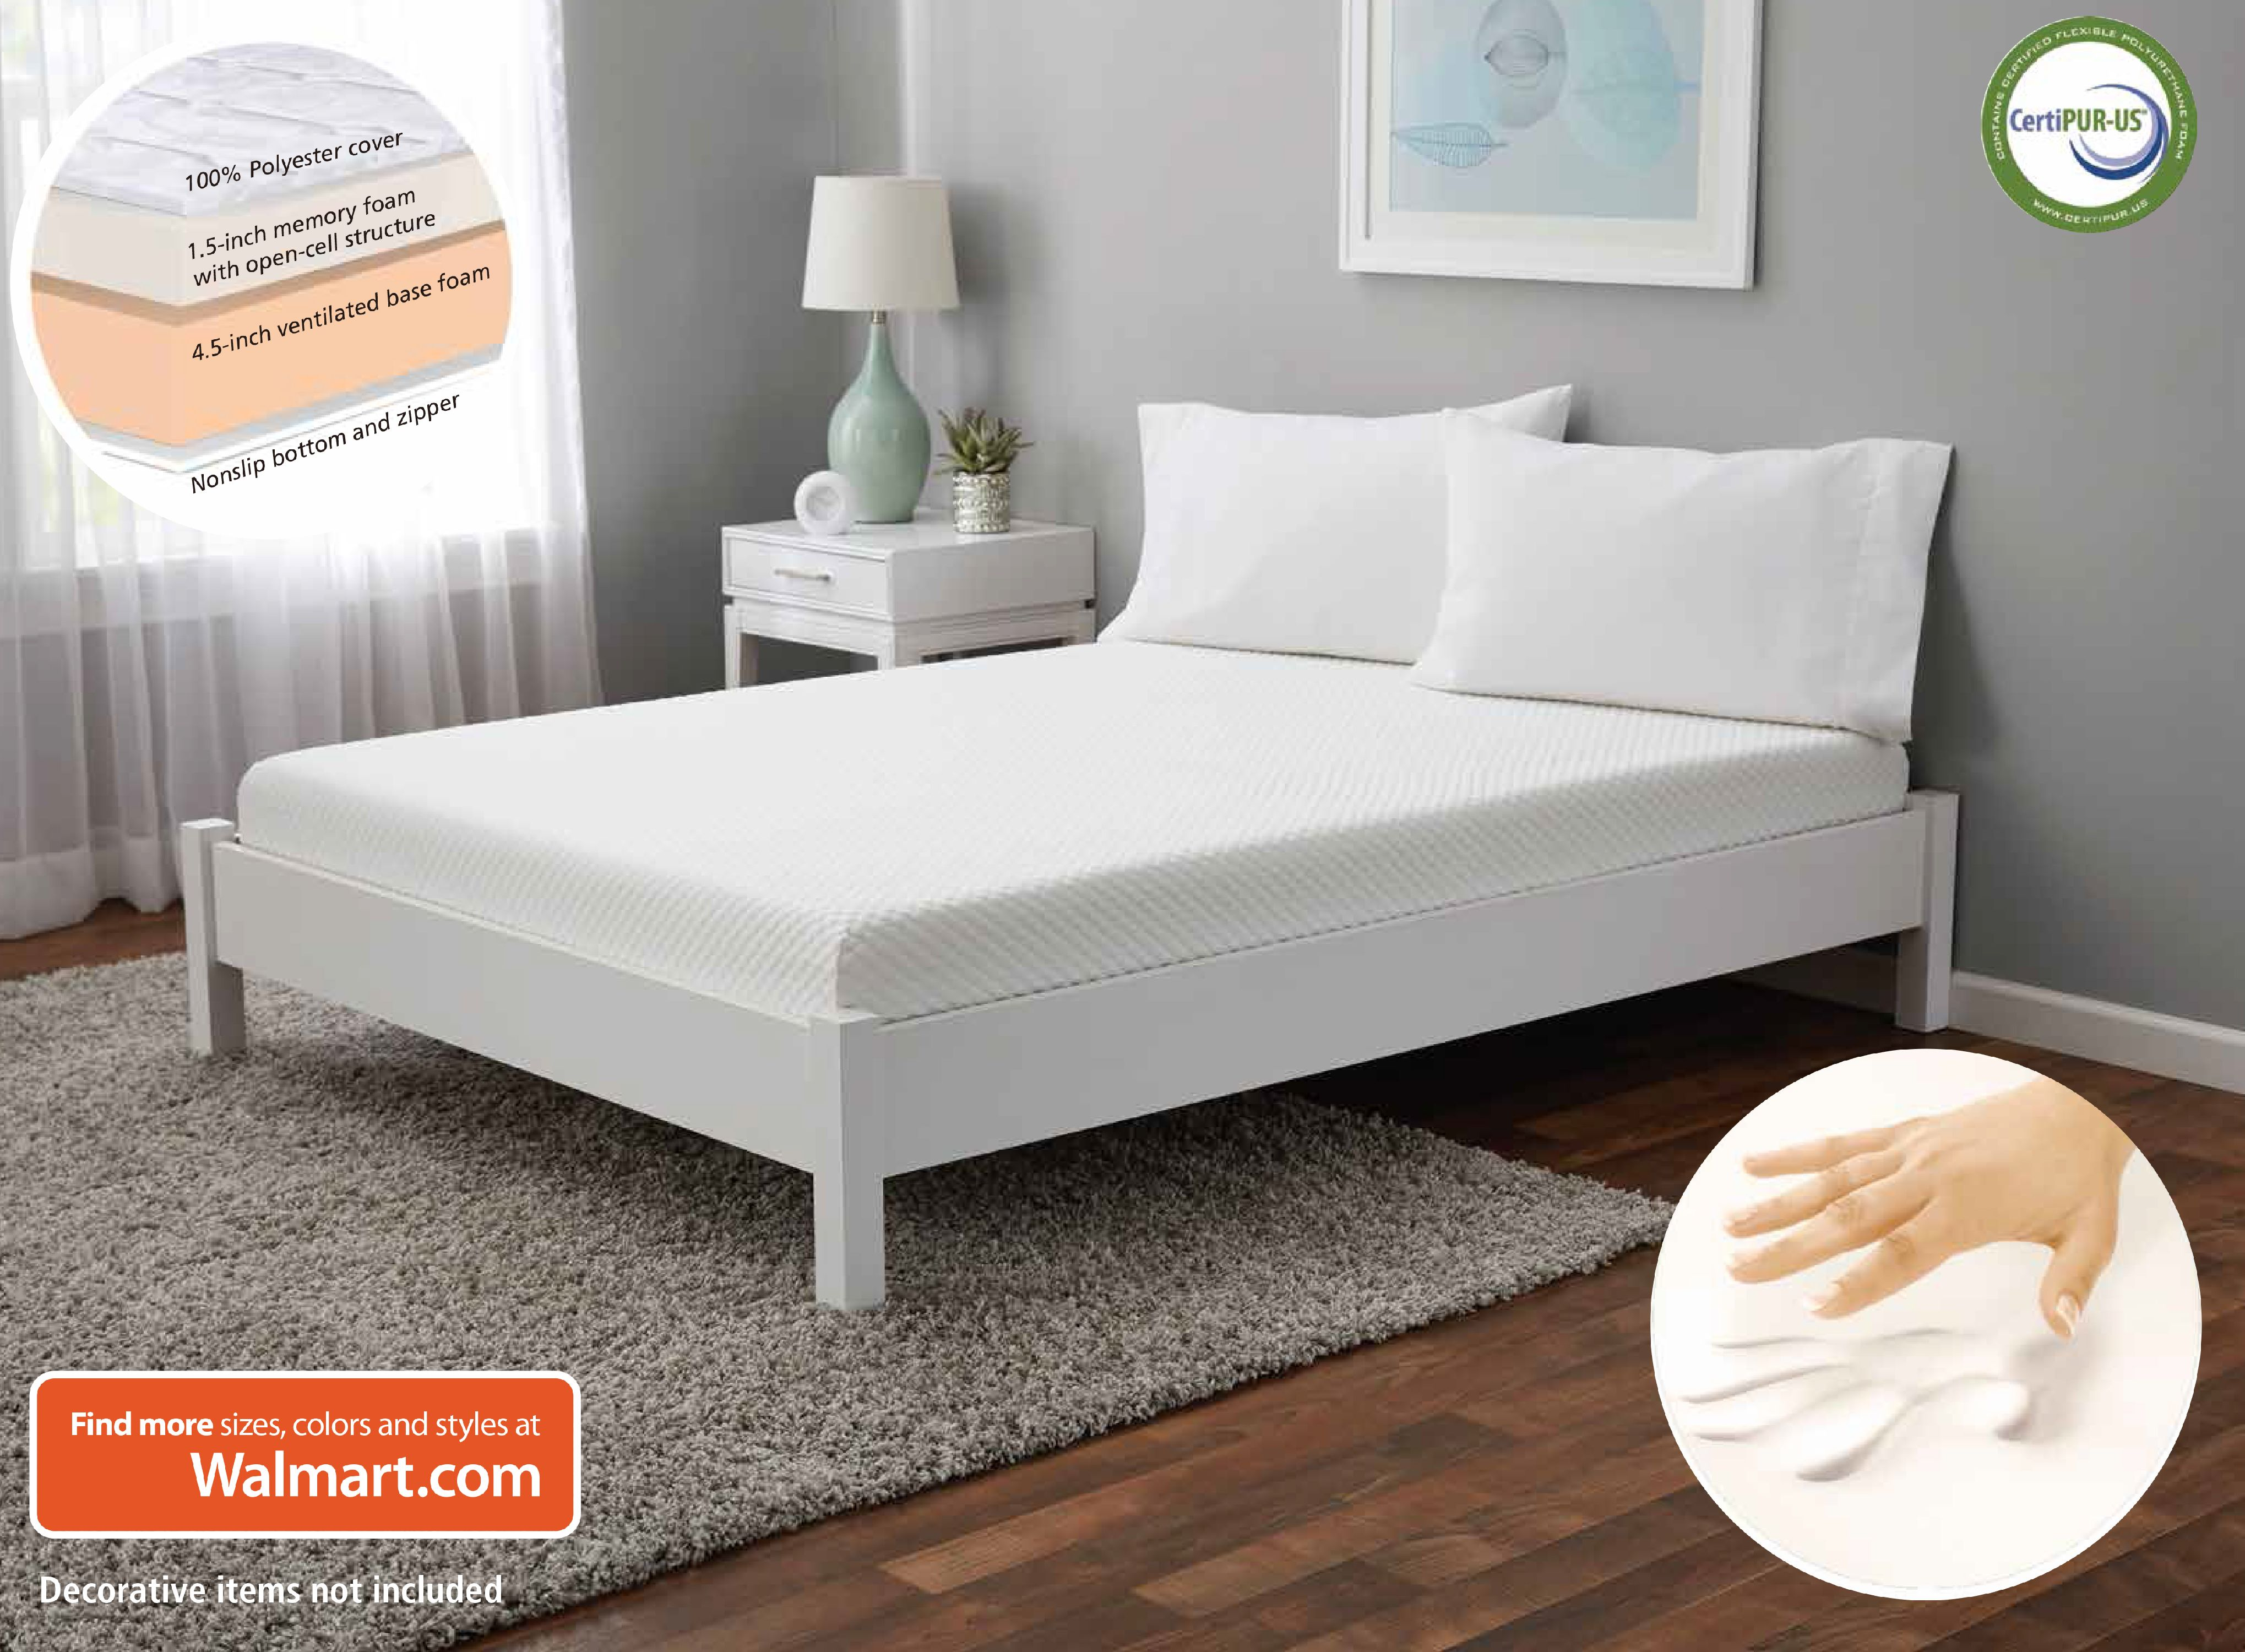 gel response arctic mattress of cooling dreams review bedding new fast dreamfoam